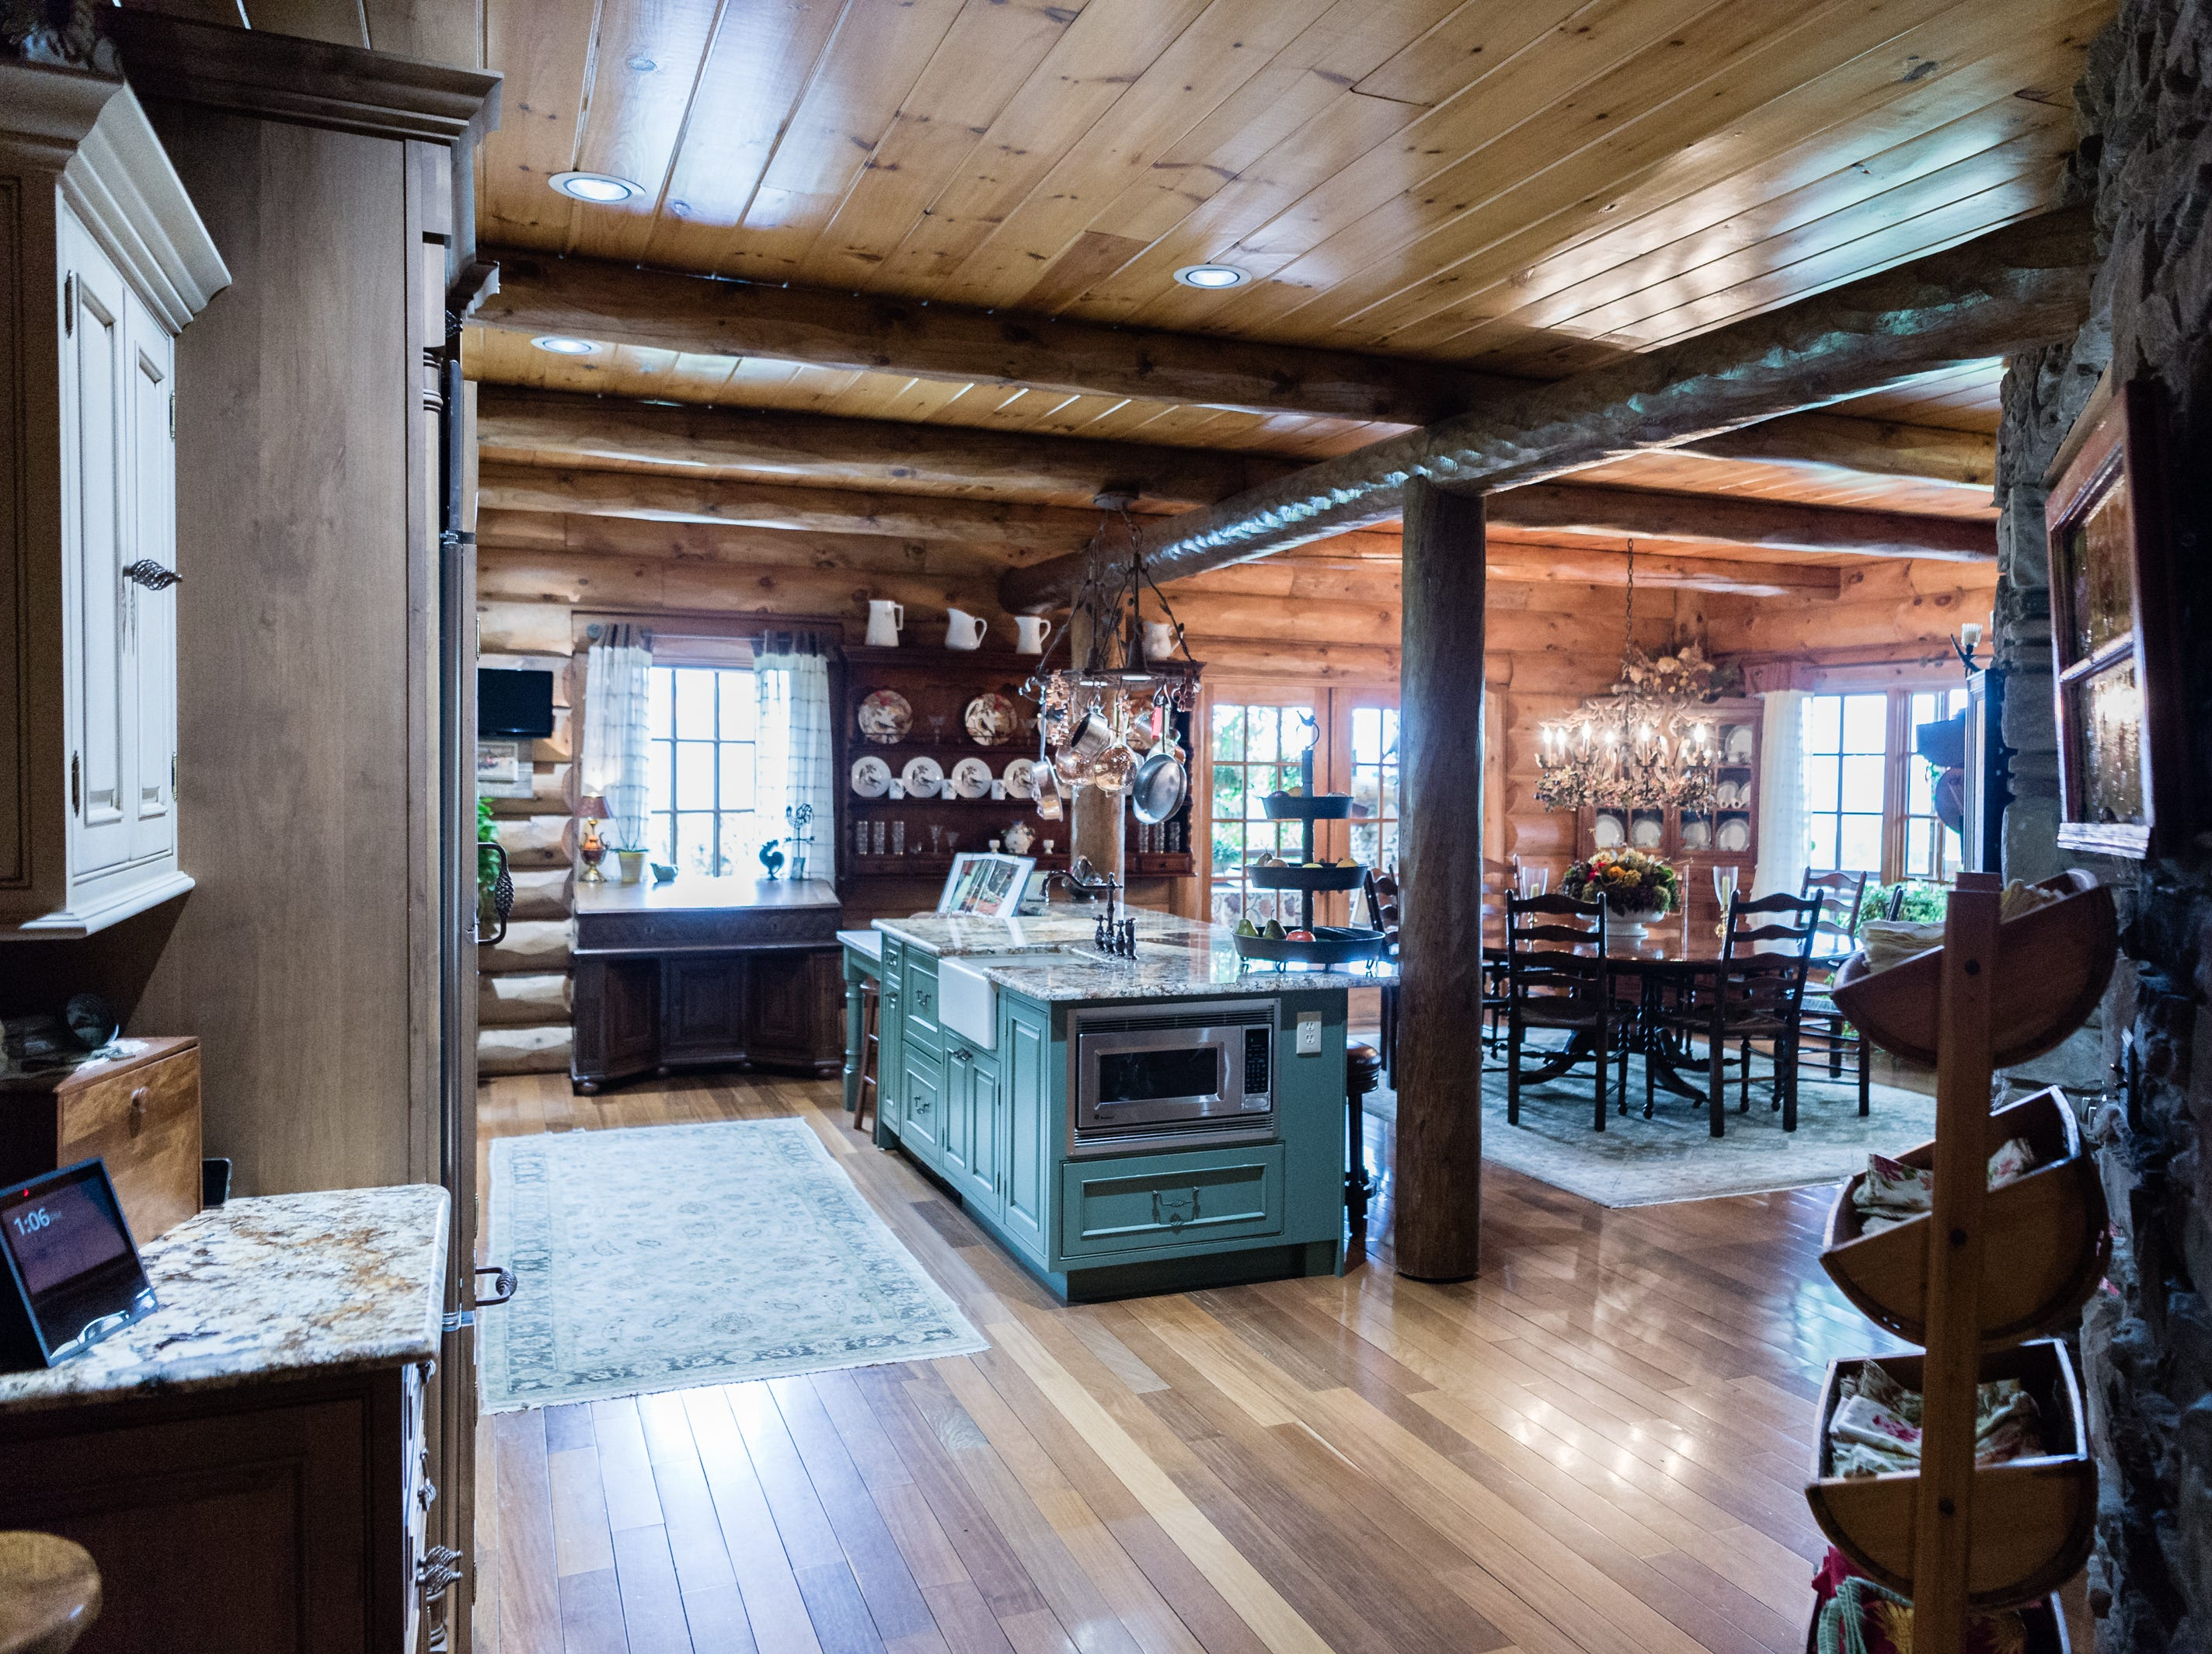 The kitchen of Dan and Belle Fangmeyer's log cabin in Waynesville.